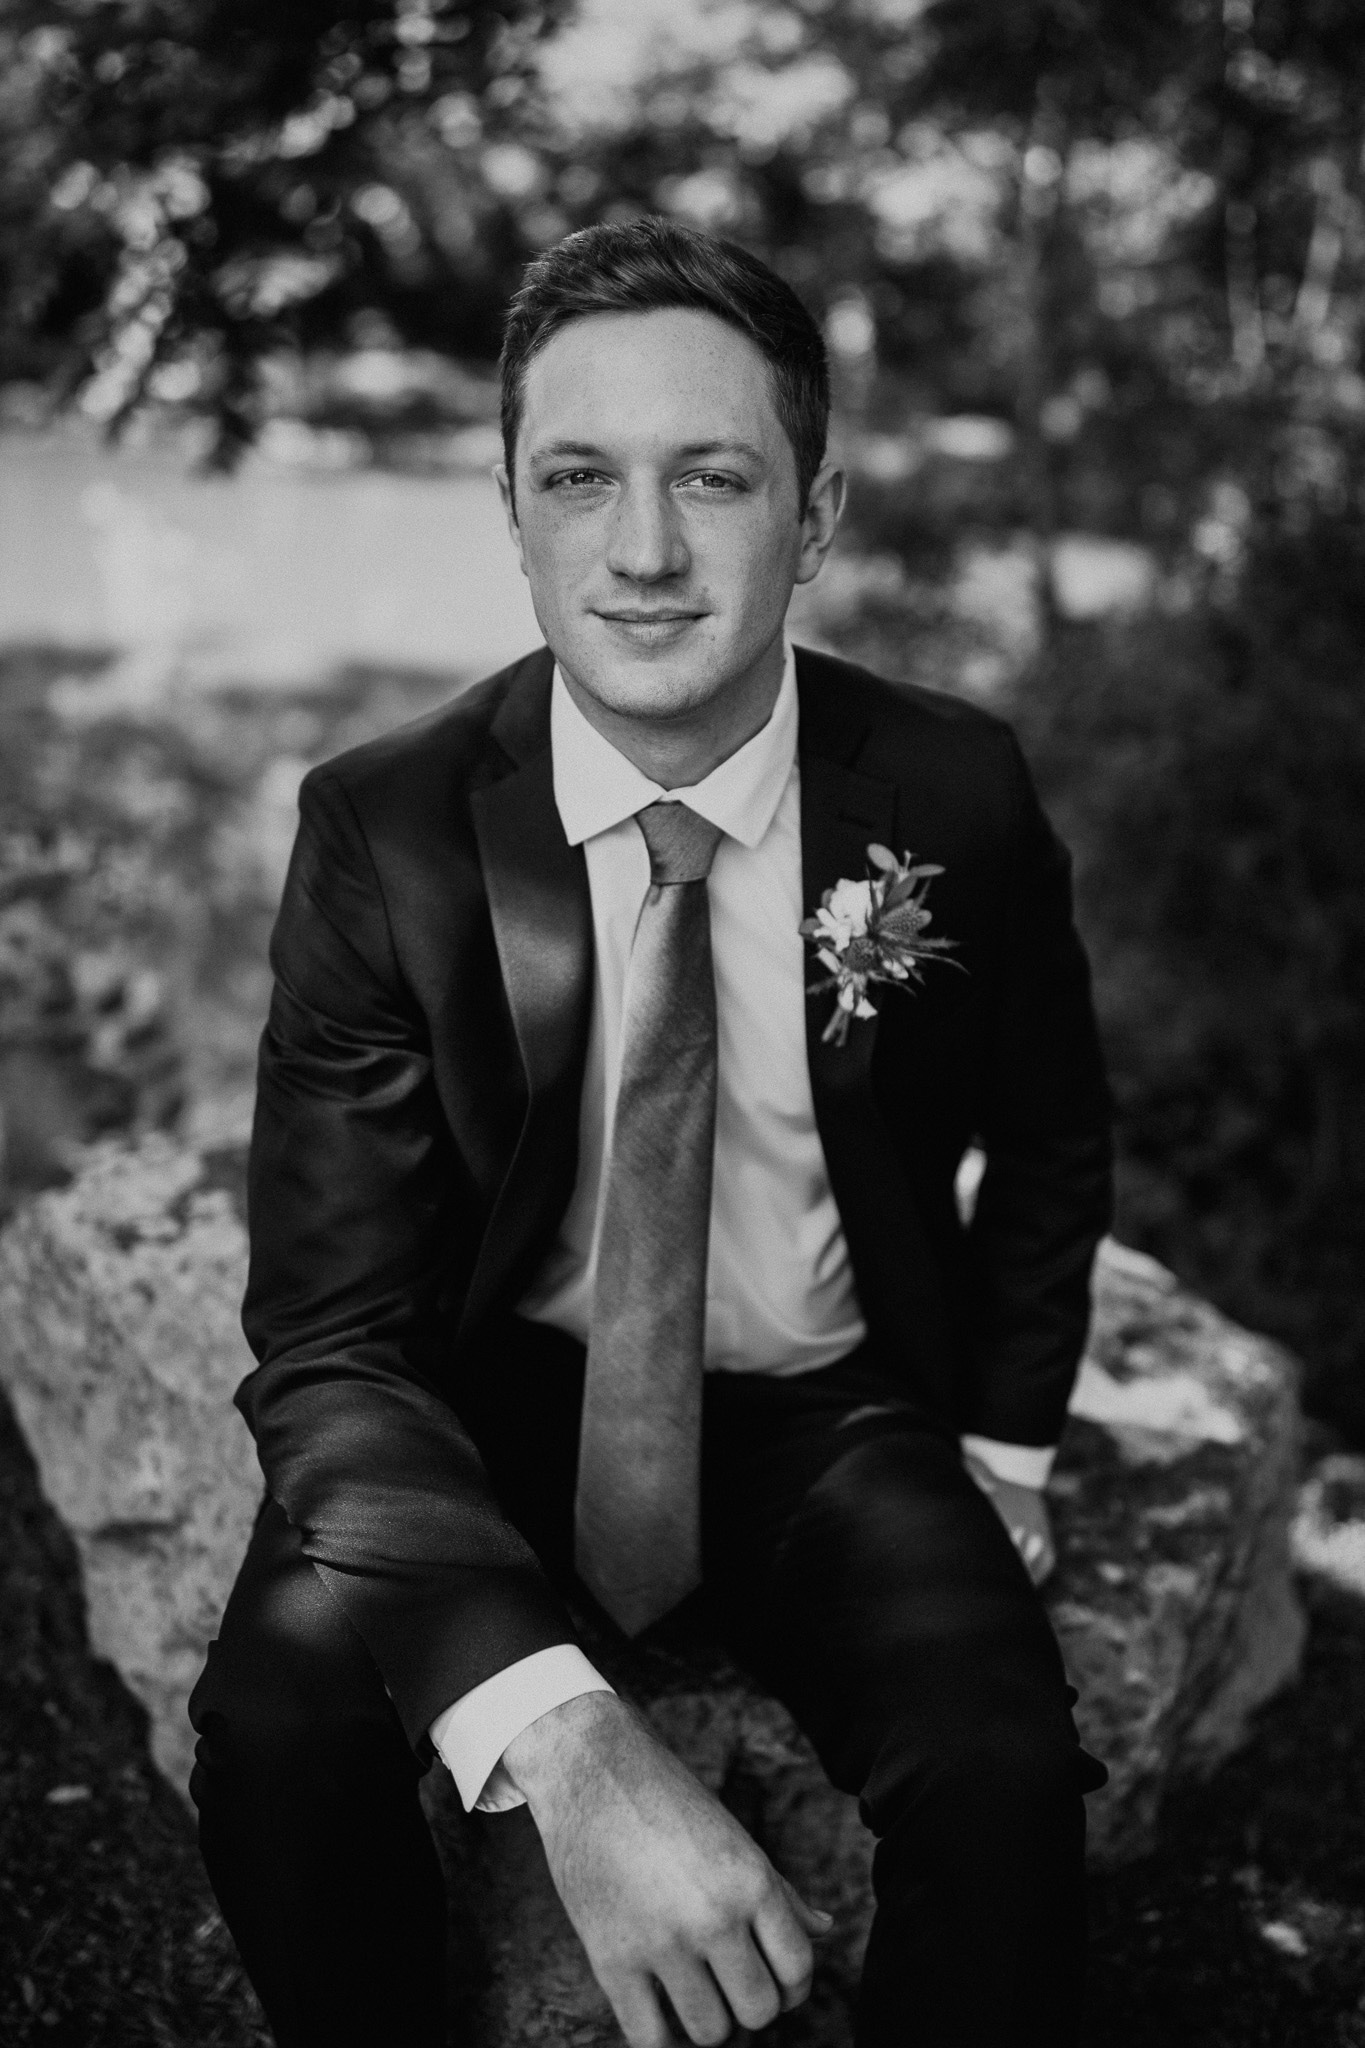 Black and white grooms portrait: Vibrant Summer Wedding at Sinking Creek Farm featured on Nashville Bride Guide